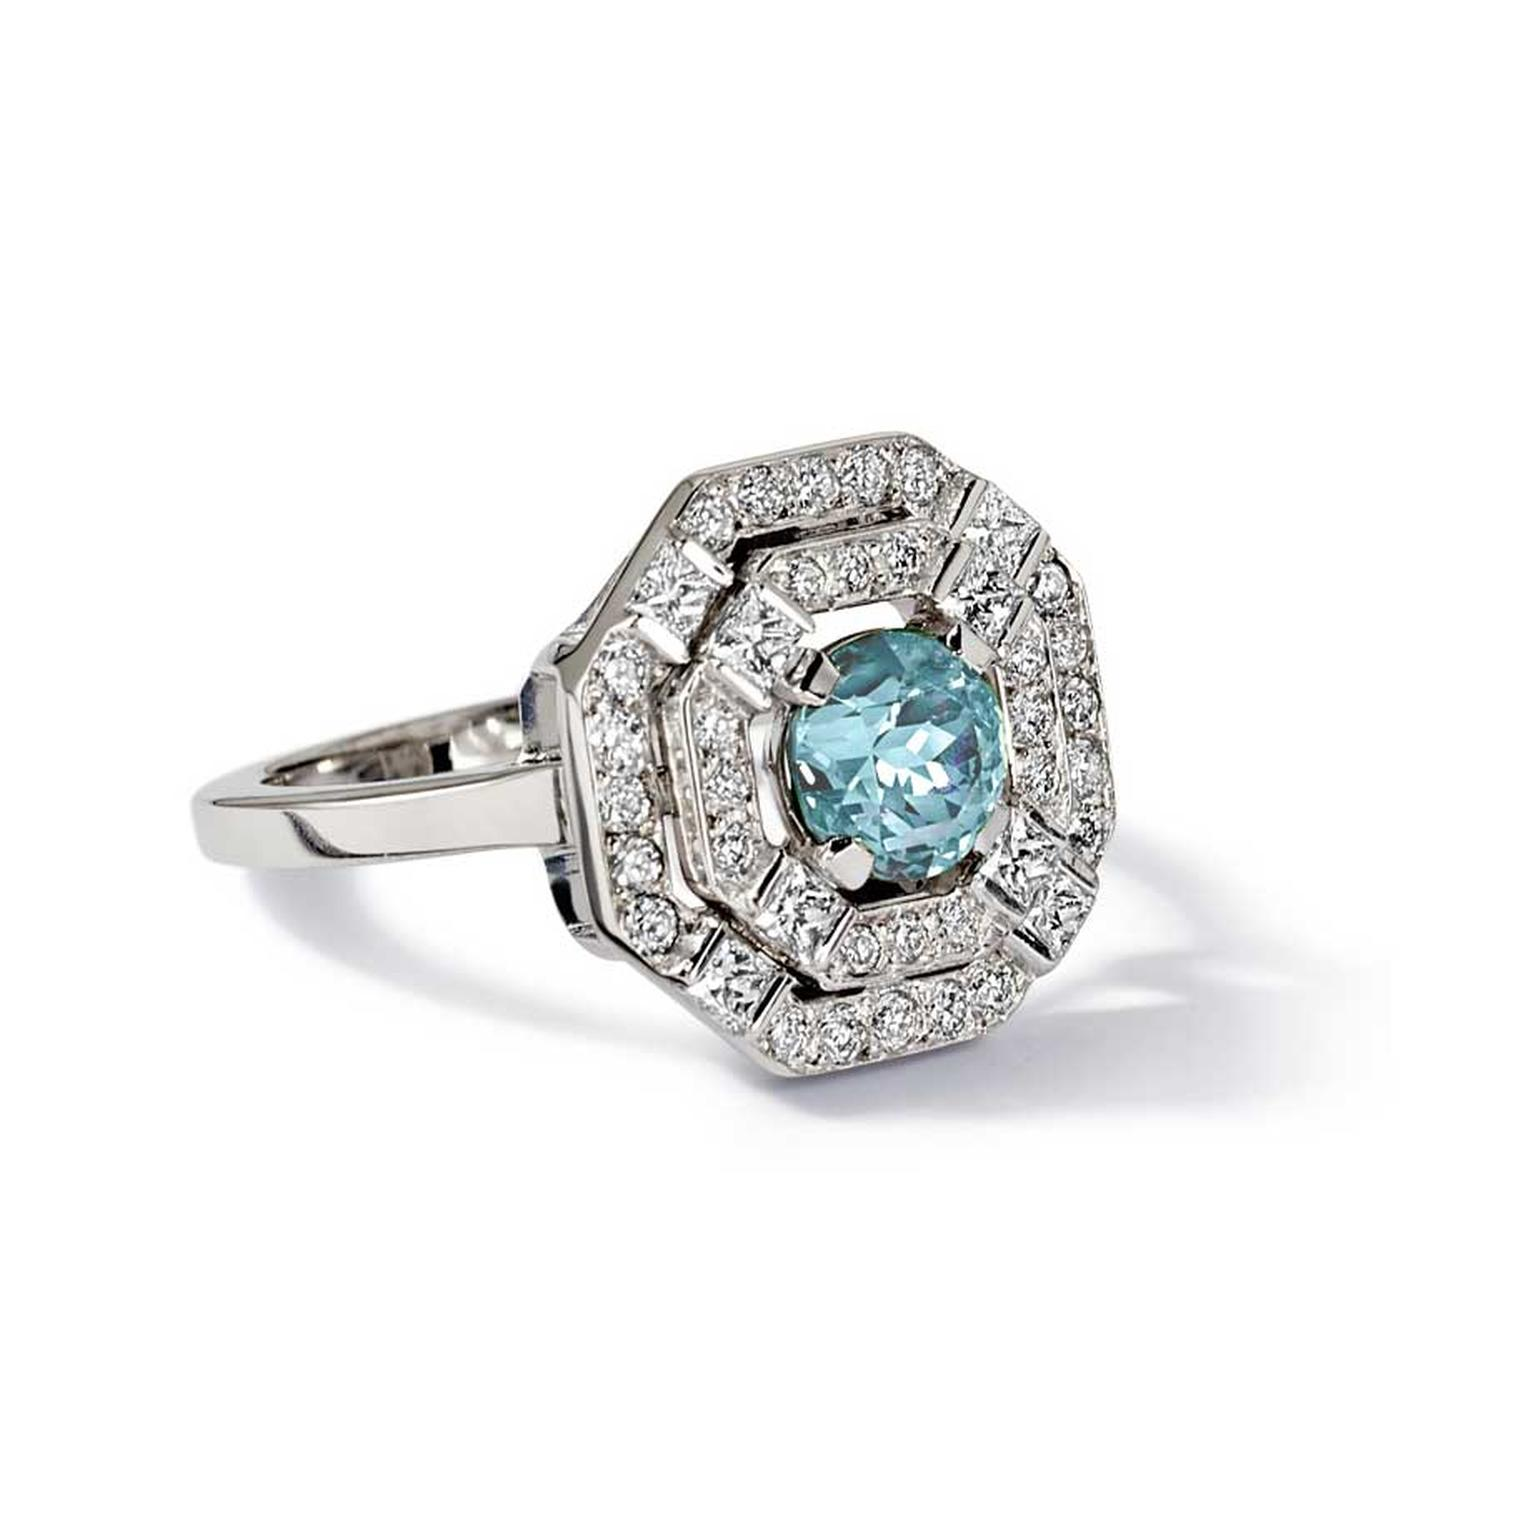 Cassandra Goad Eloise aquamarine engagement ring